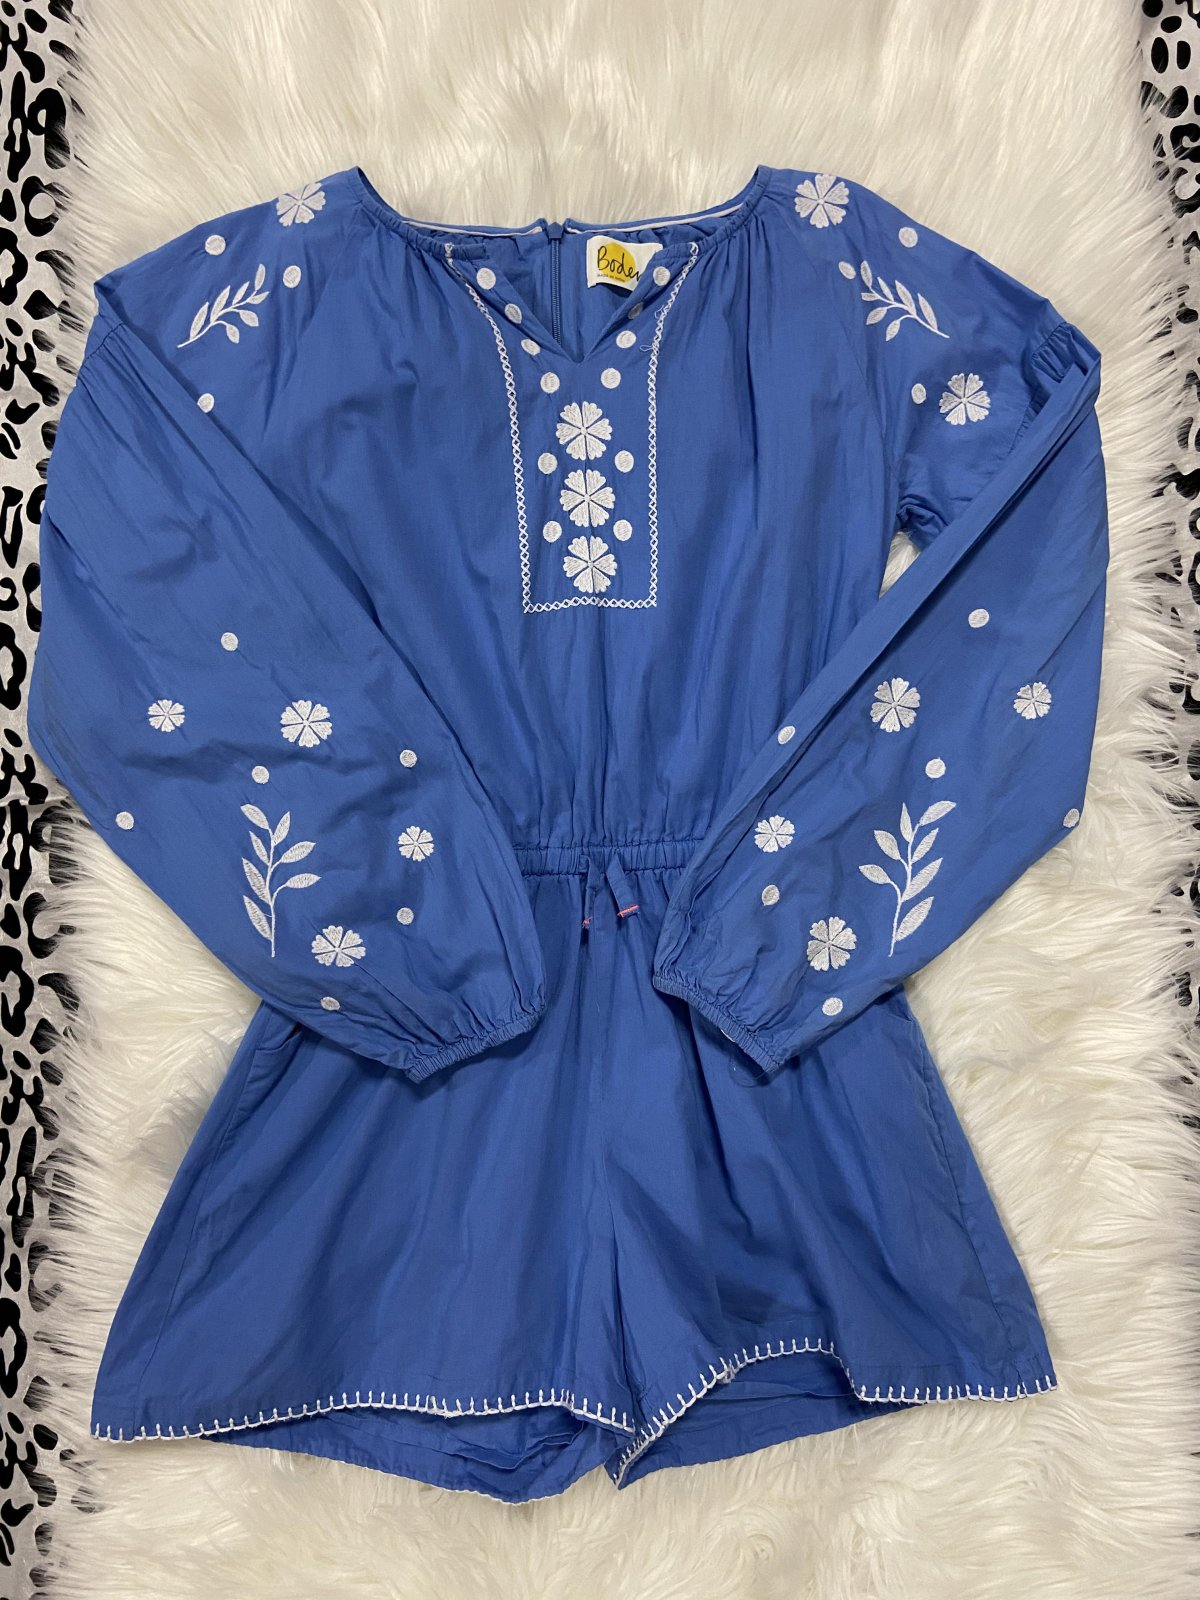 Mini Boden Long Sleeve Romper Blue Size 13-14Y